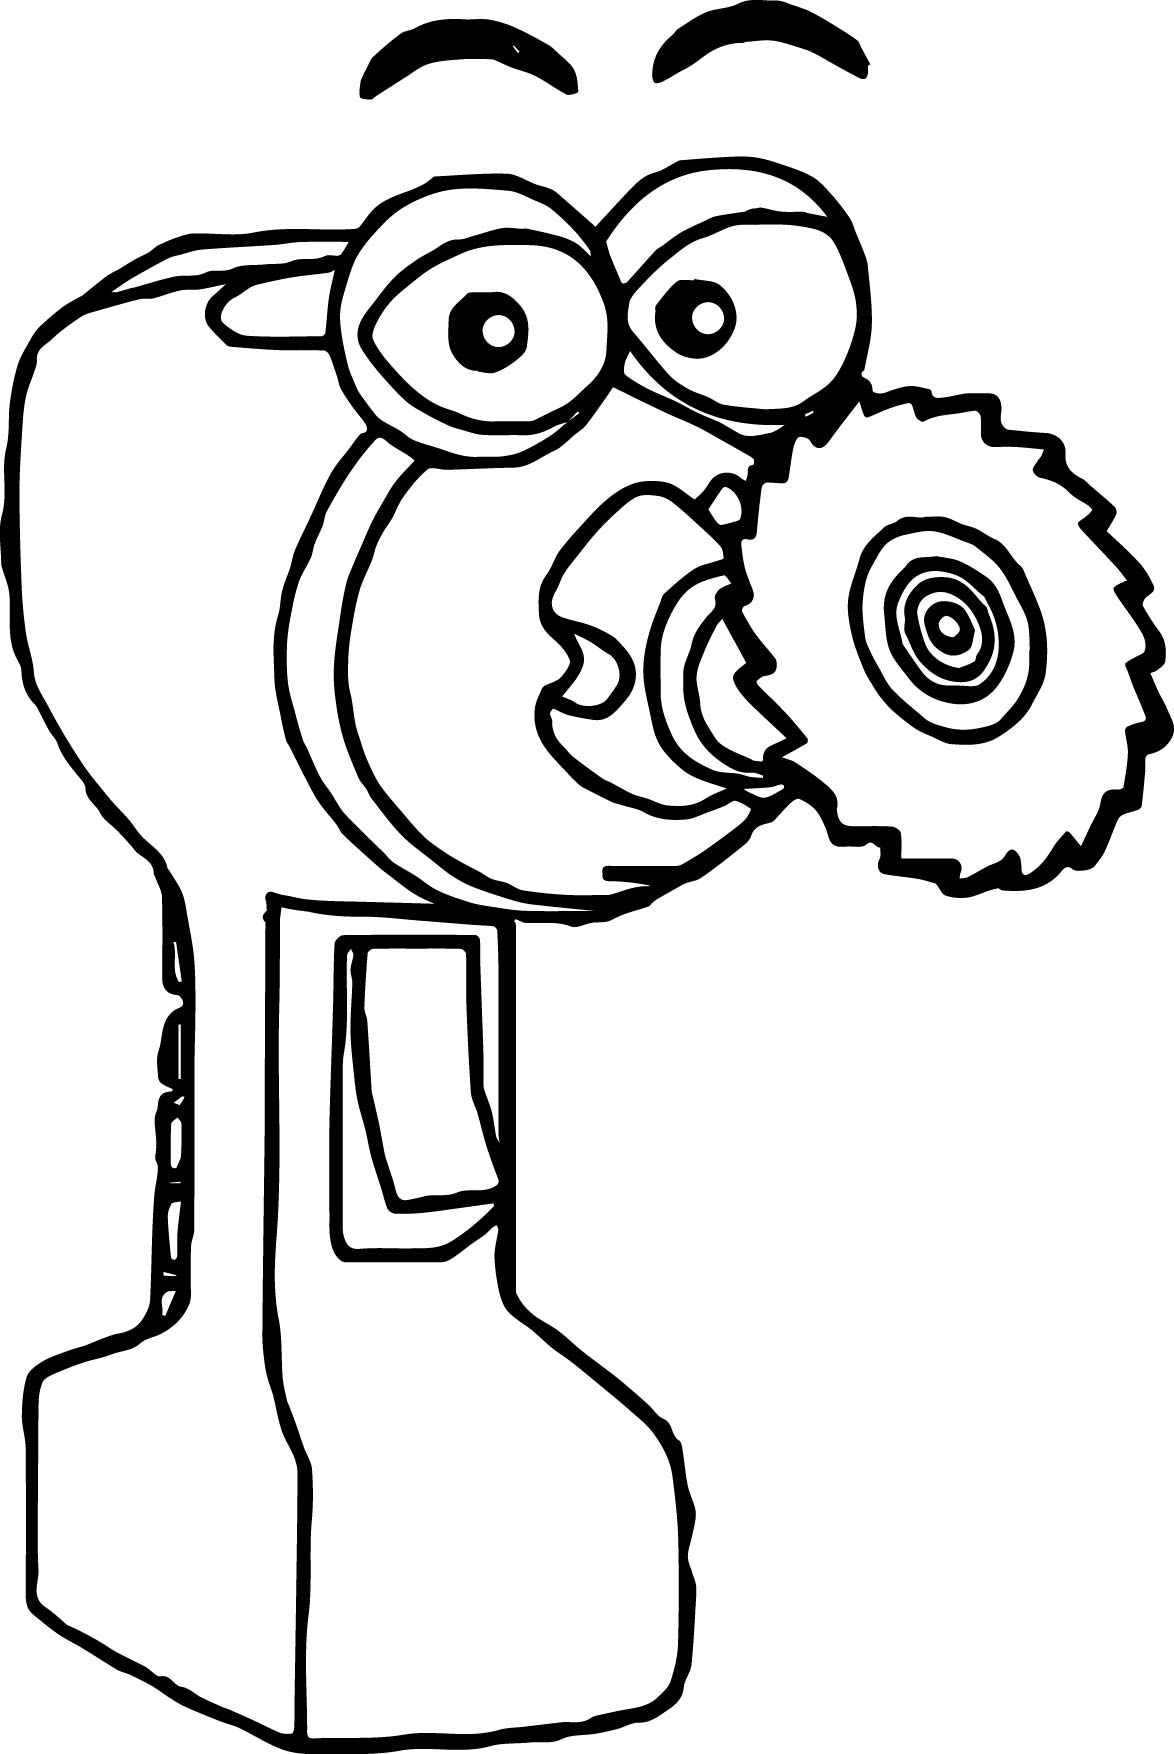 Handy Manny Coloring Pages Spinner Handy Manny Coloring Page  Wecoloringpage